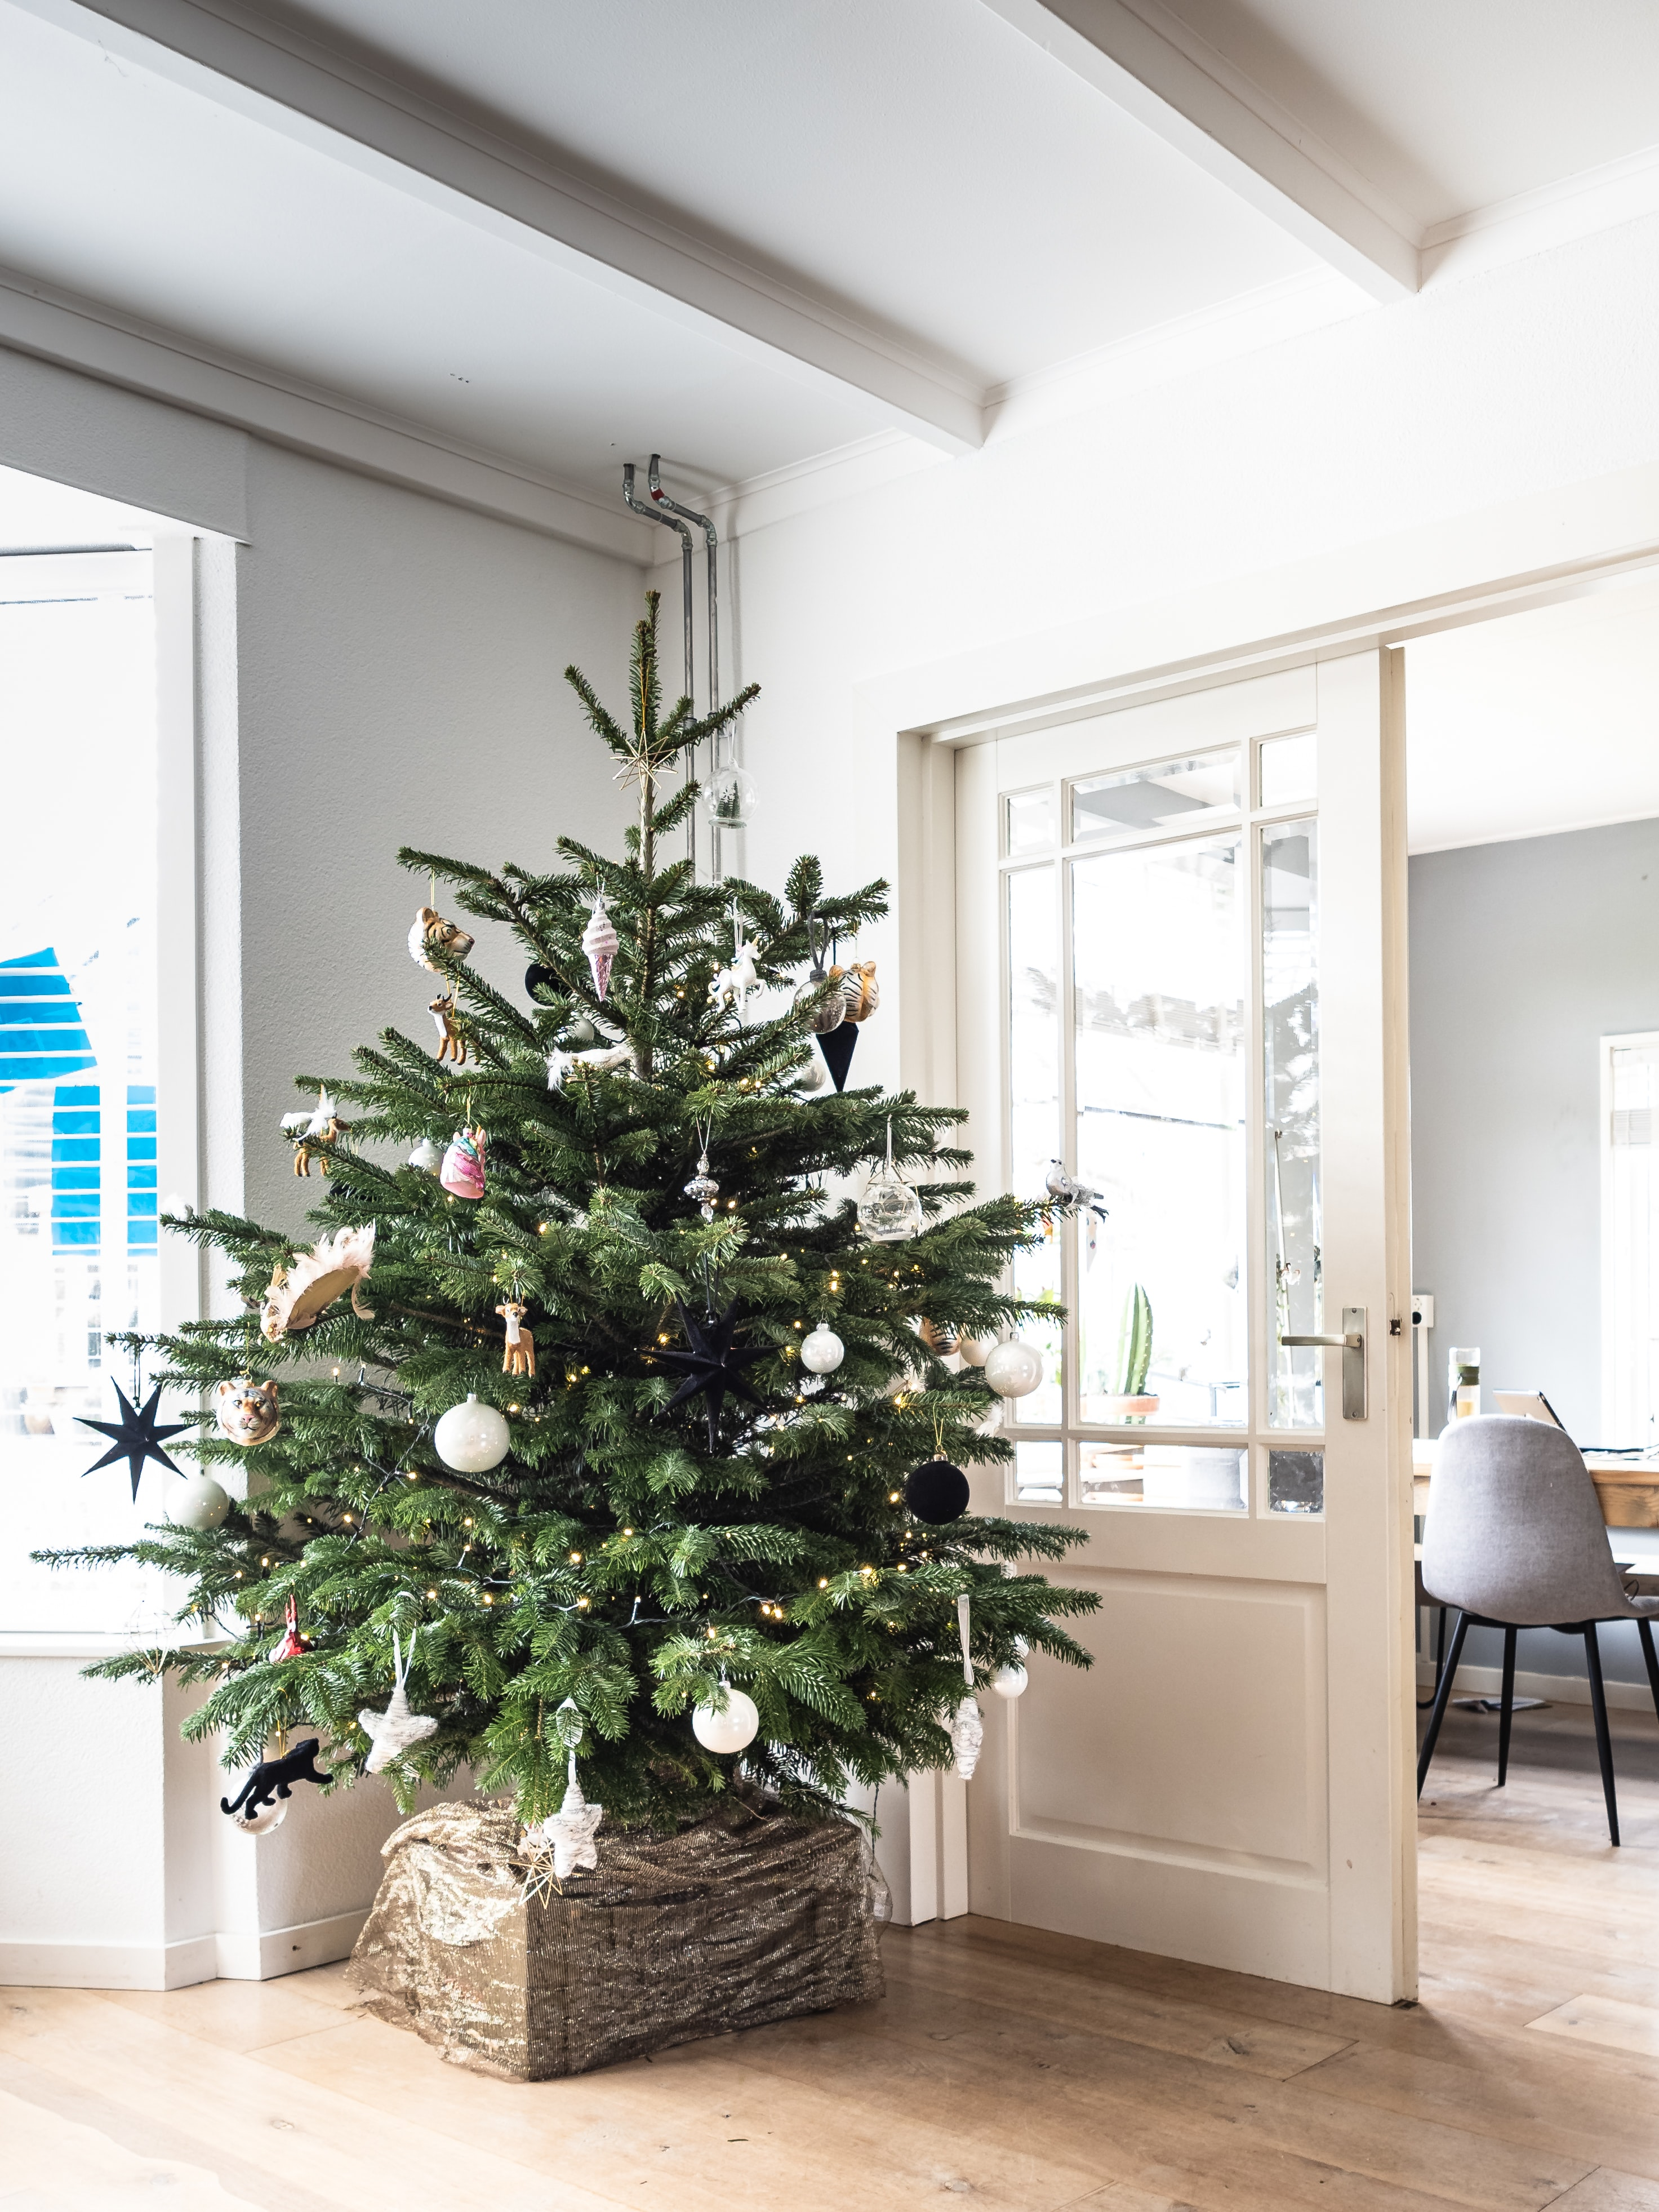 Green Christmas Tree With Baubles Near White Wooden Framed Glass Door Photo Free Plant Image On Unsplash